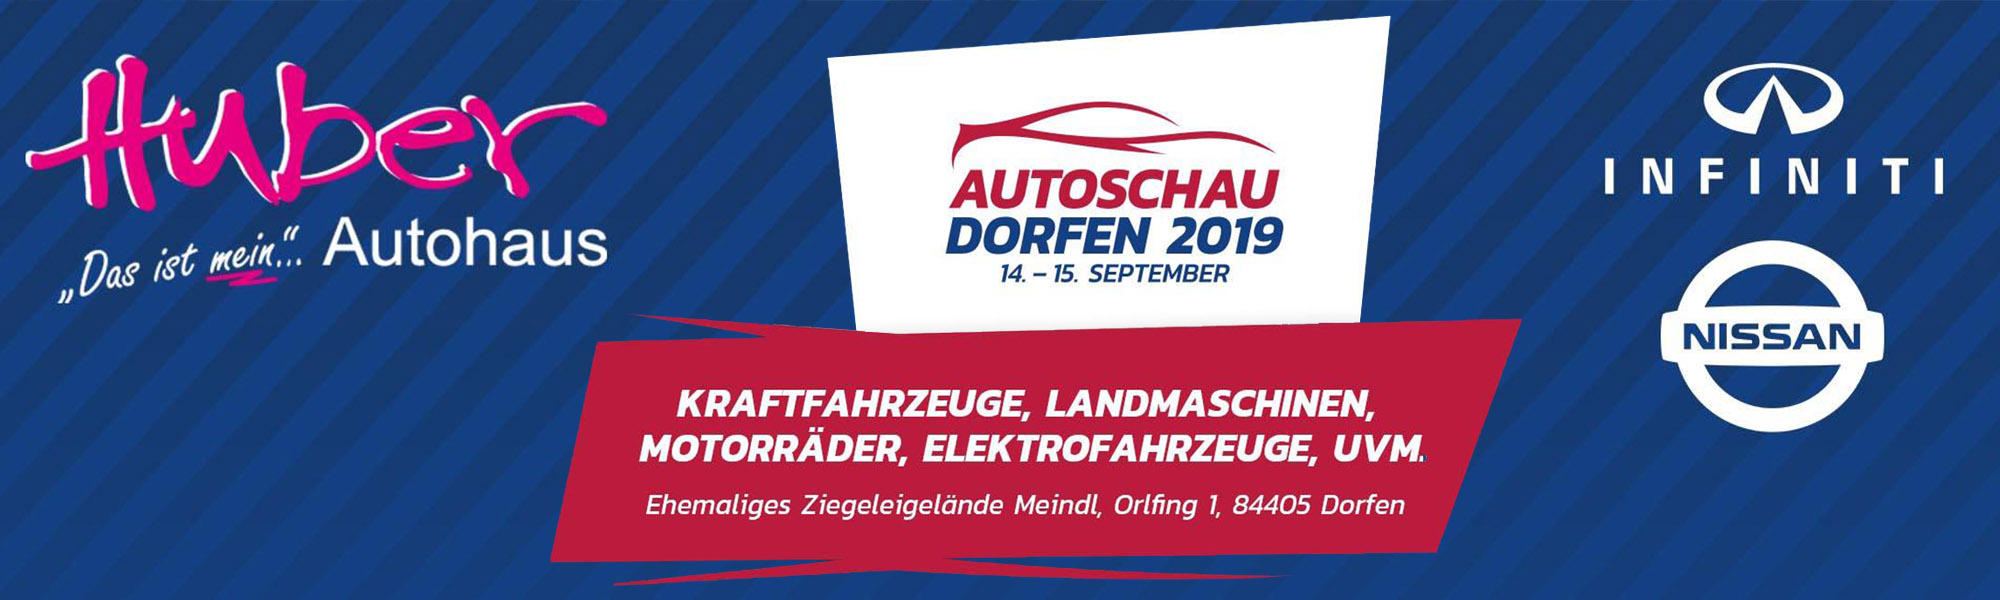 Autoschau Dorfen 14.-15. September 2019